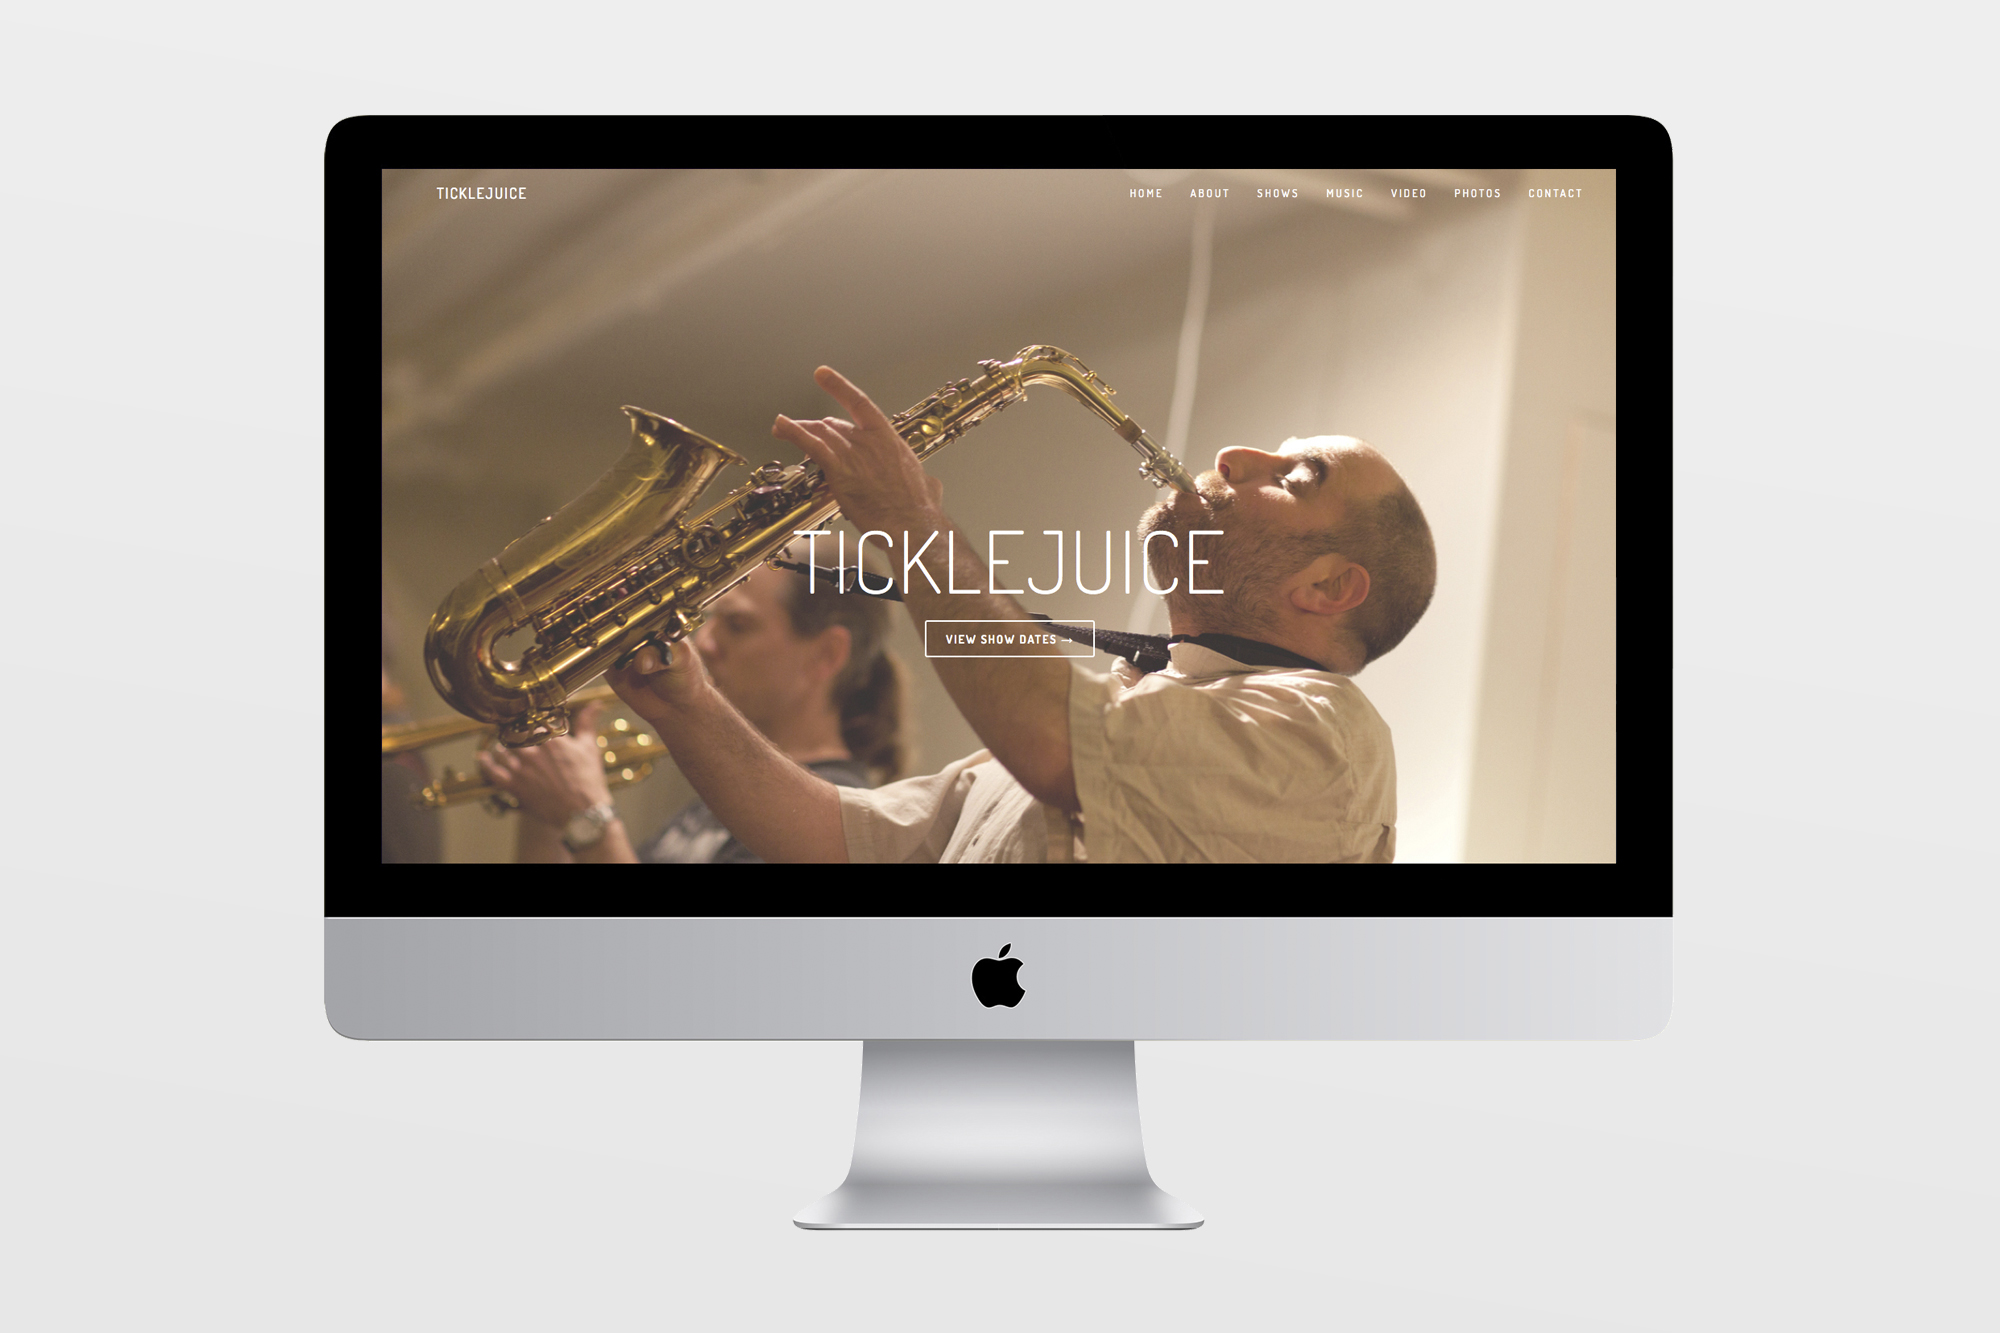 TICKLEJUICE - Services for jazz band TickleJuice included a new, responsive website, social media, and strategy. After completing custom branding for consistency across channels, website design included layout, custom graphics, and content creation.Media strategy and management included best practices, and uploading event videos and audio files to host sites, e.g. YouTube and iTunes.WWW.TICKLEJUICEMUSIC.COM